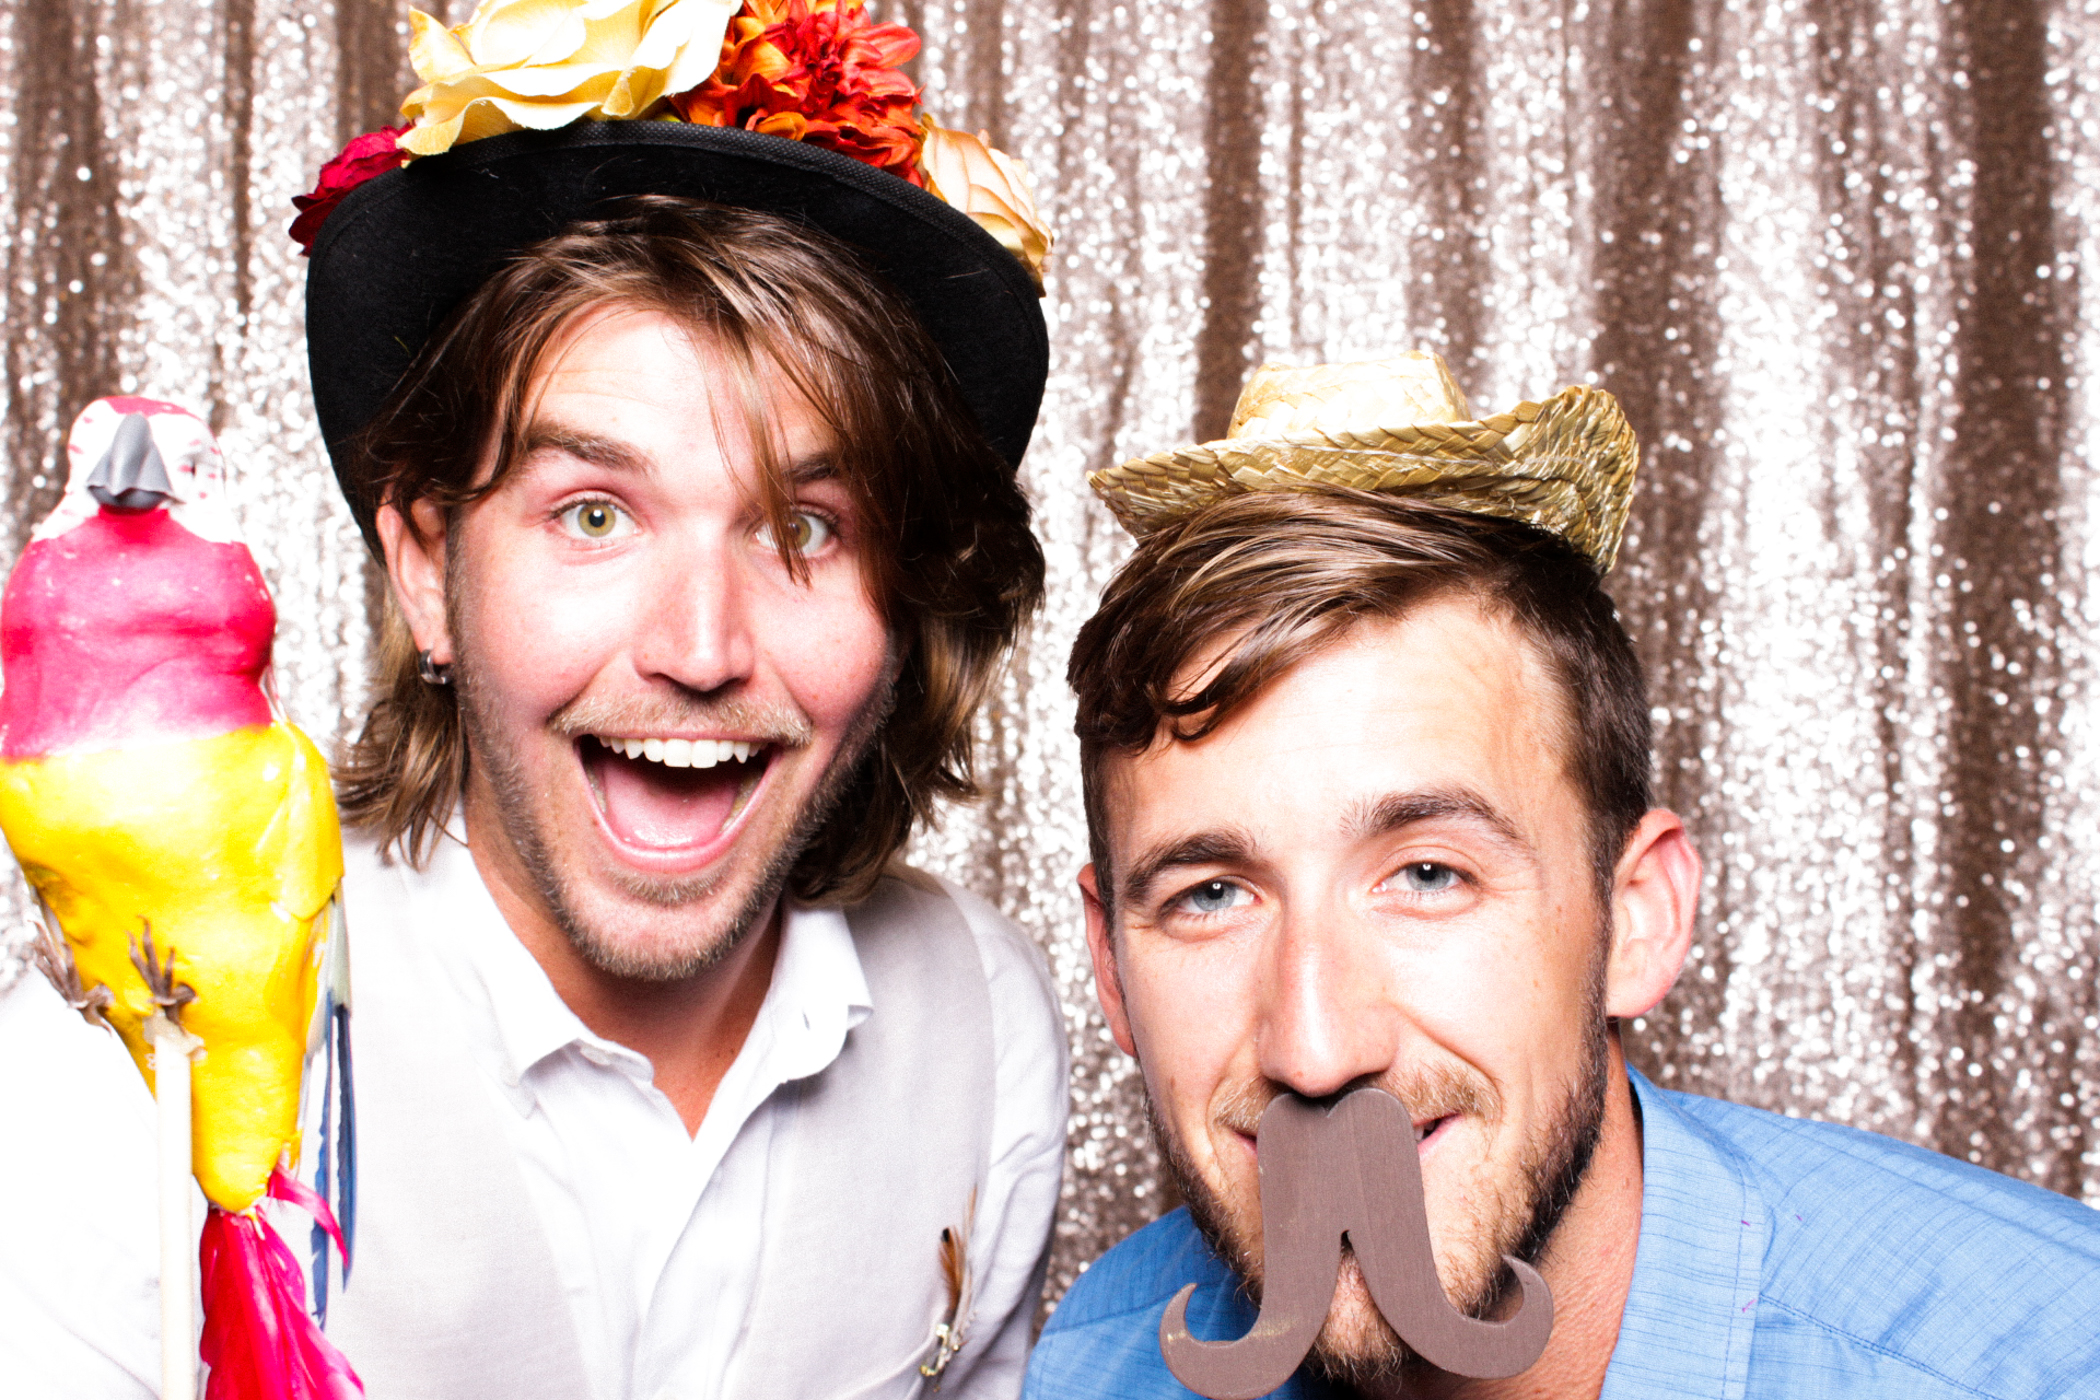 The_Reverie_Booth-Boca_Raton_Photobooth-Wedding_Photobooth_Florida-Florida_Photobooth_Rental-Wedding_Photobooth-065.jpg